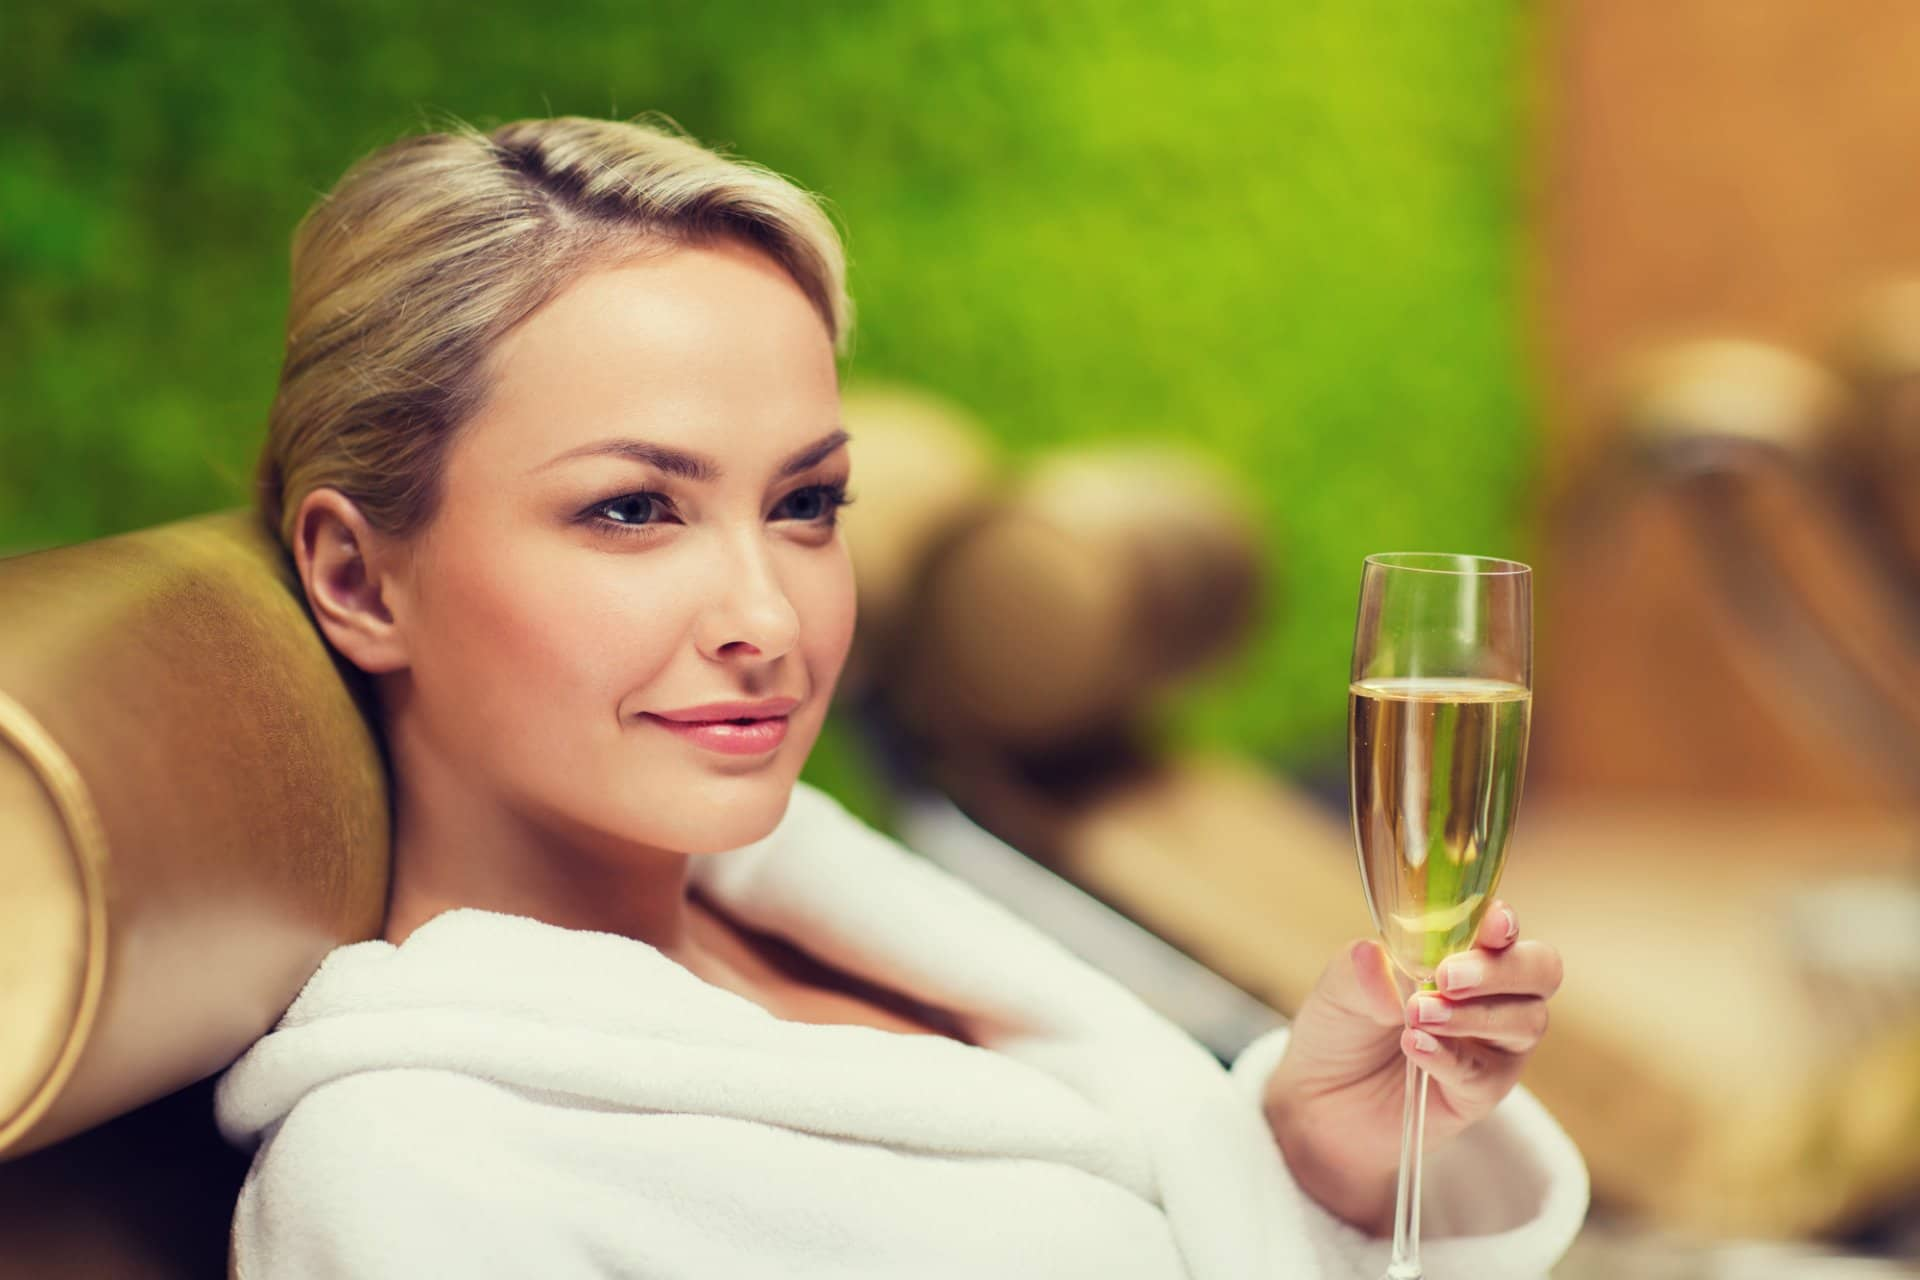 customer wearing a robe holding a champagne glass